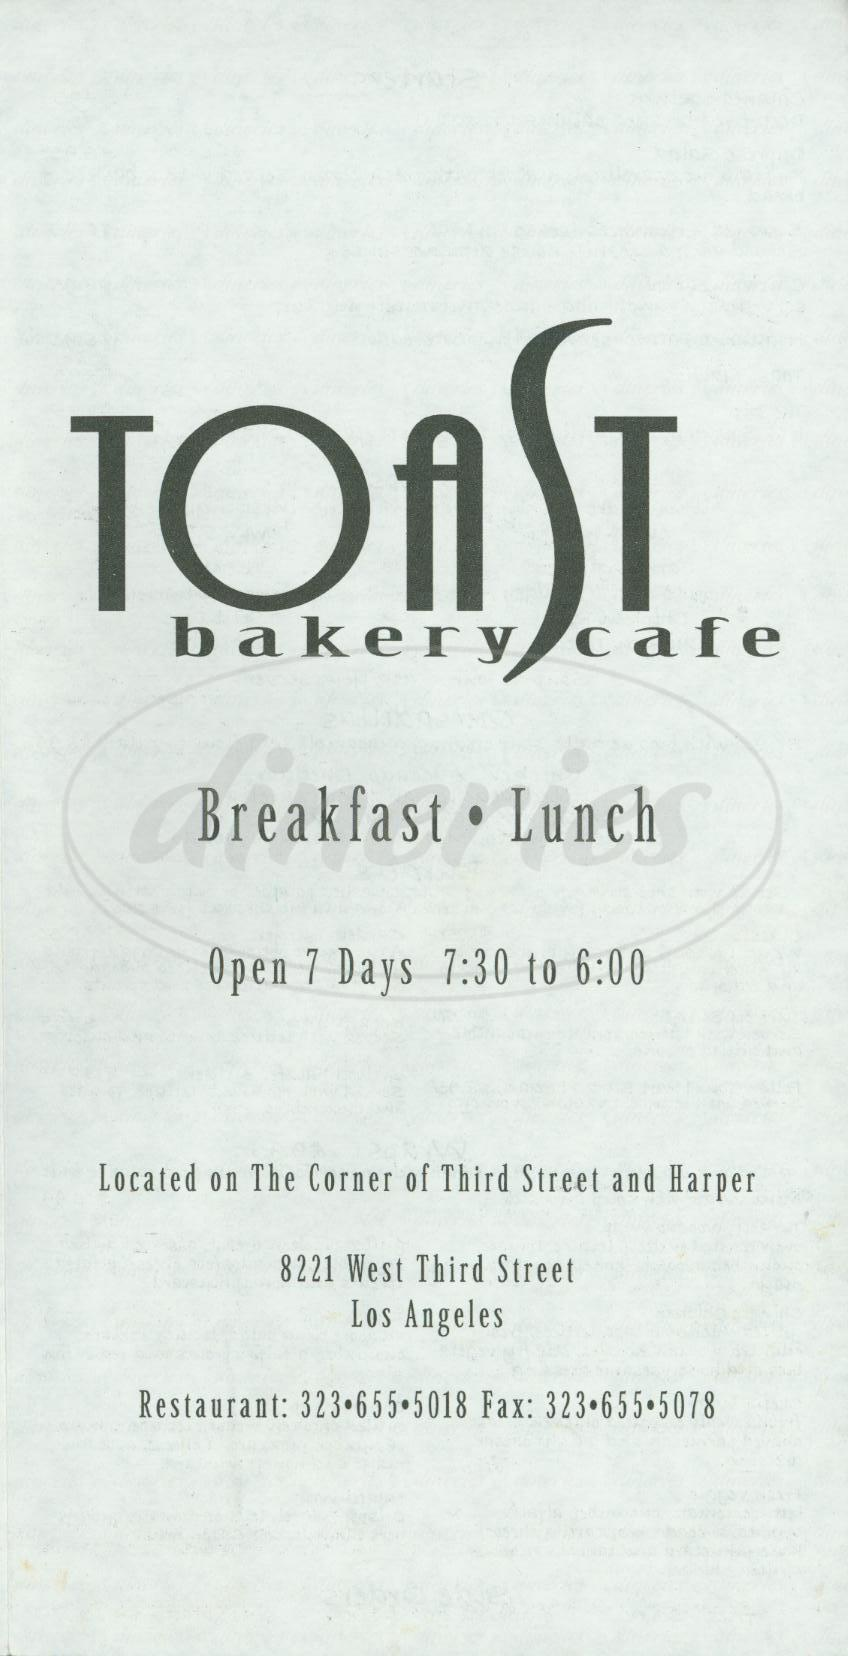 menu for Toast Bakery Café